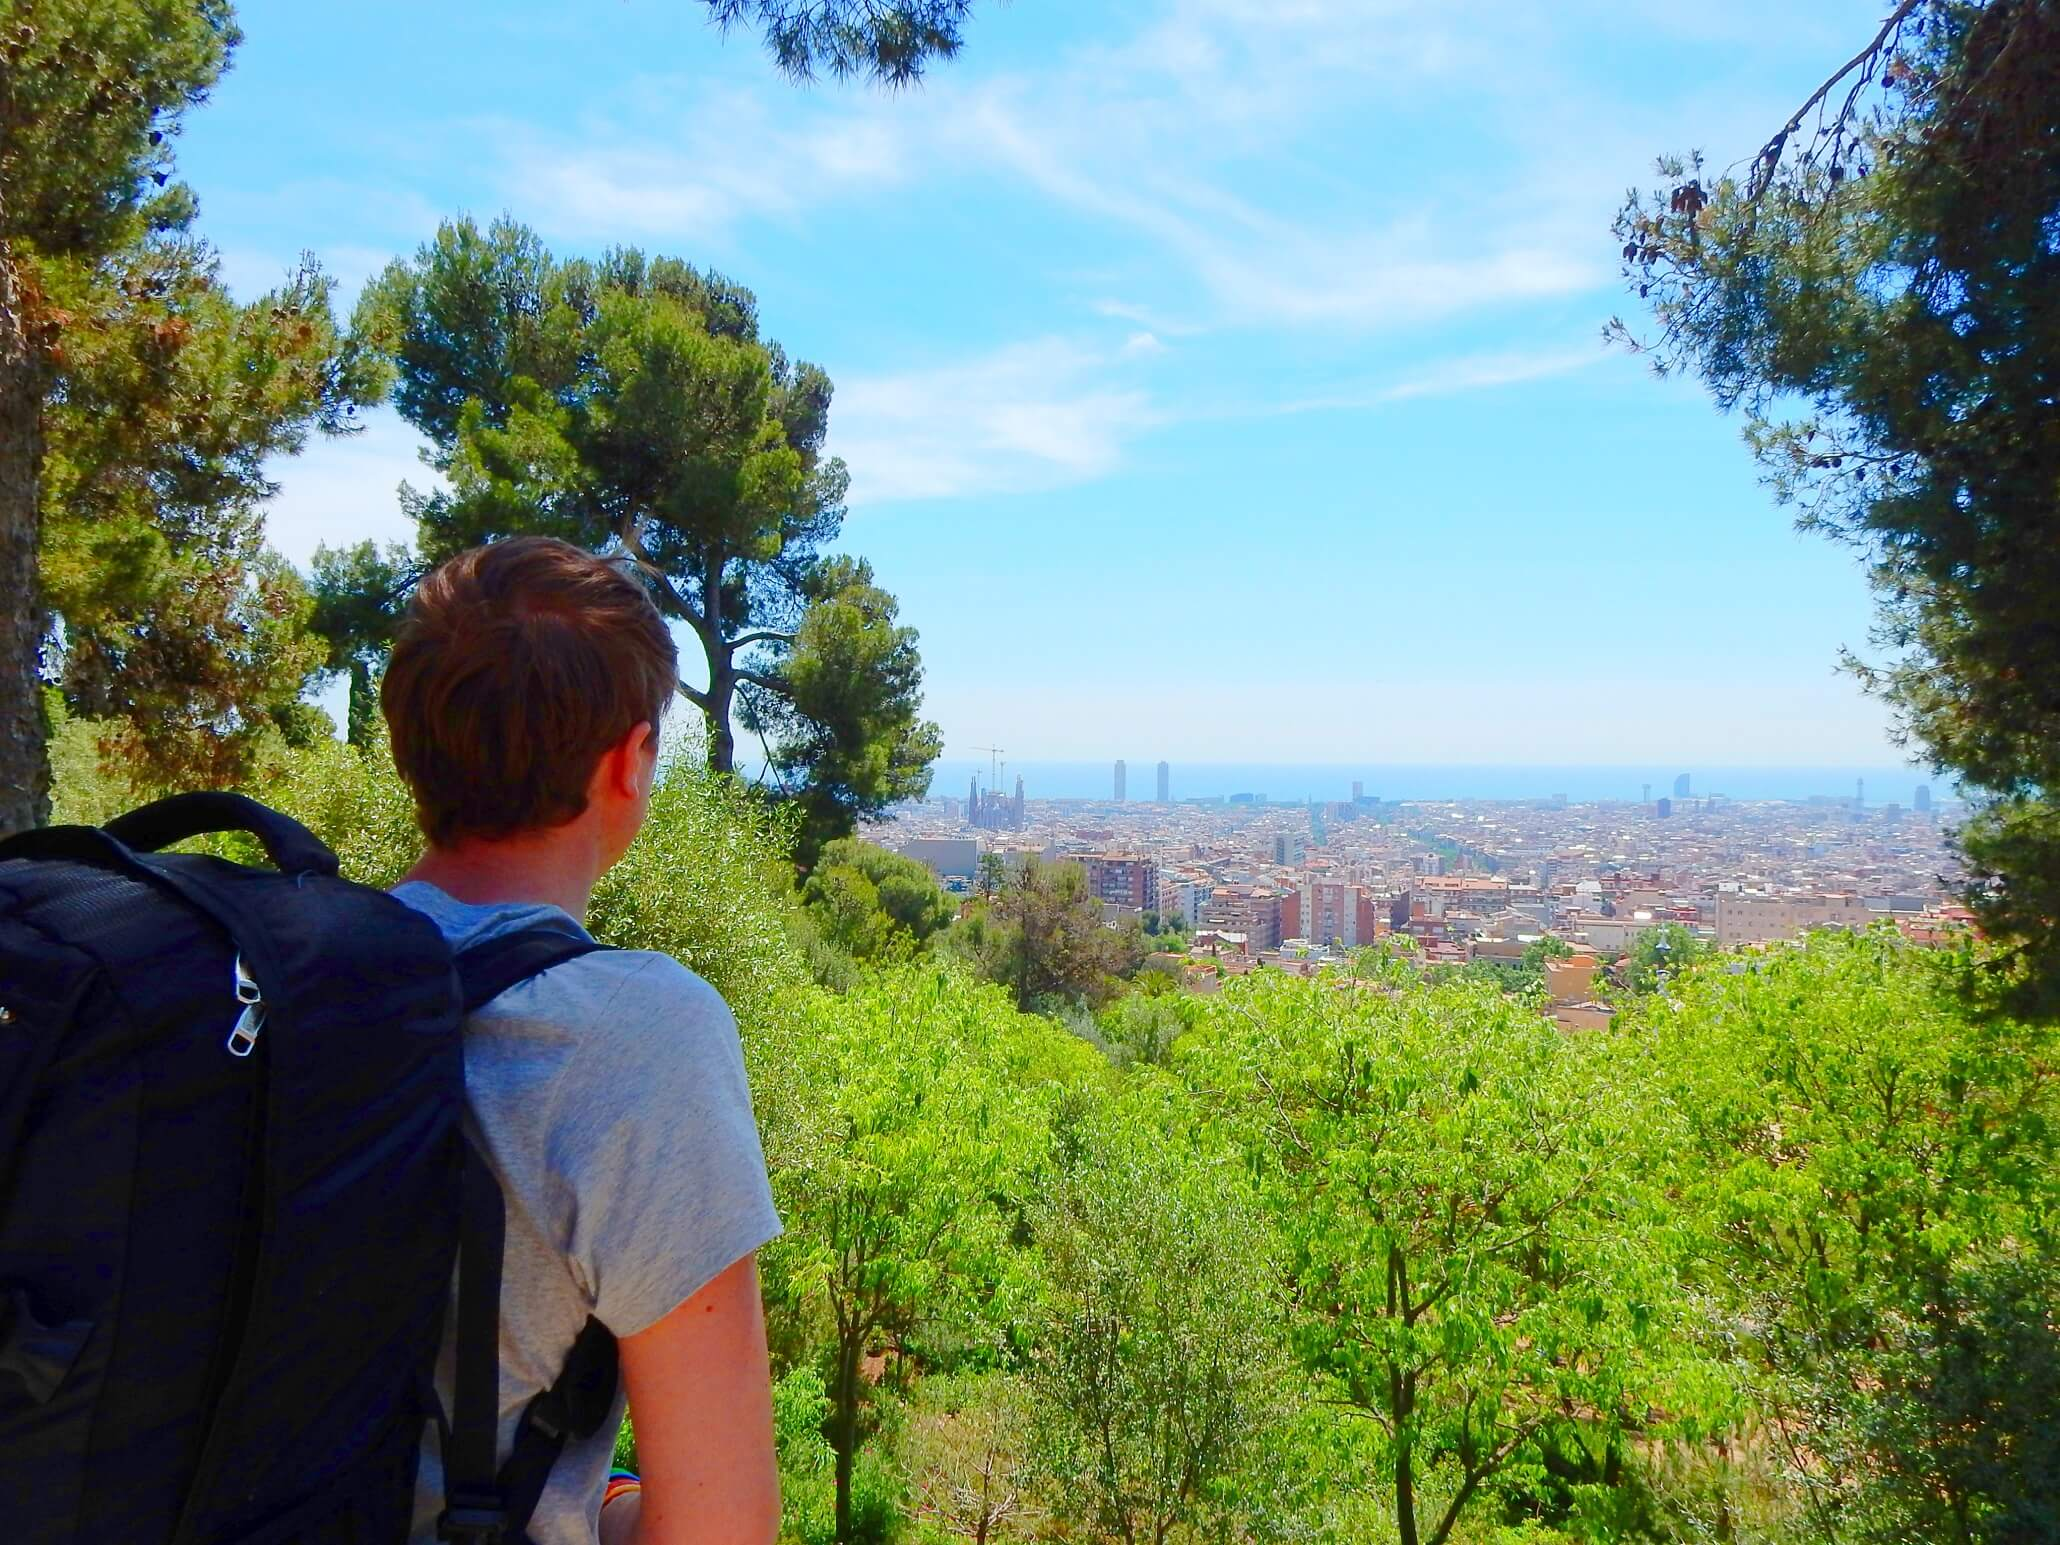 Interrailing - Cightseeing in amazing Barcelona